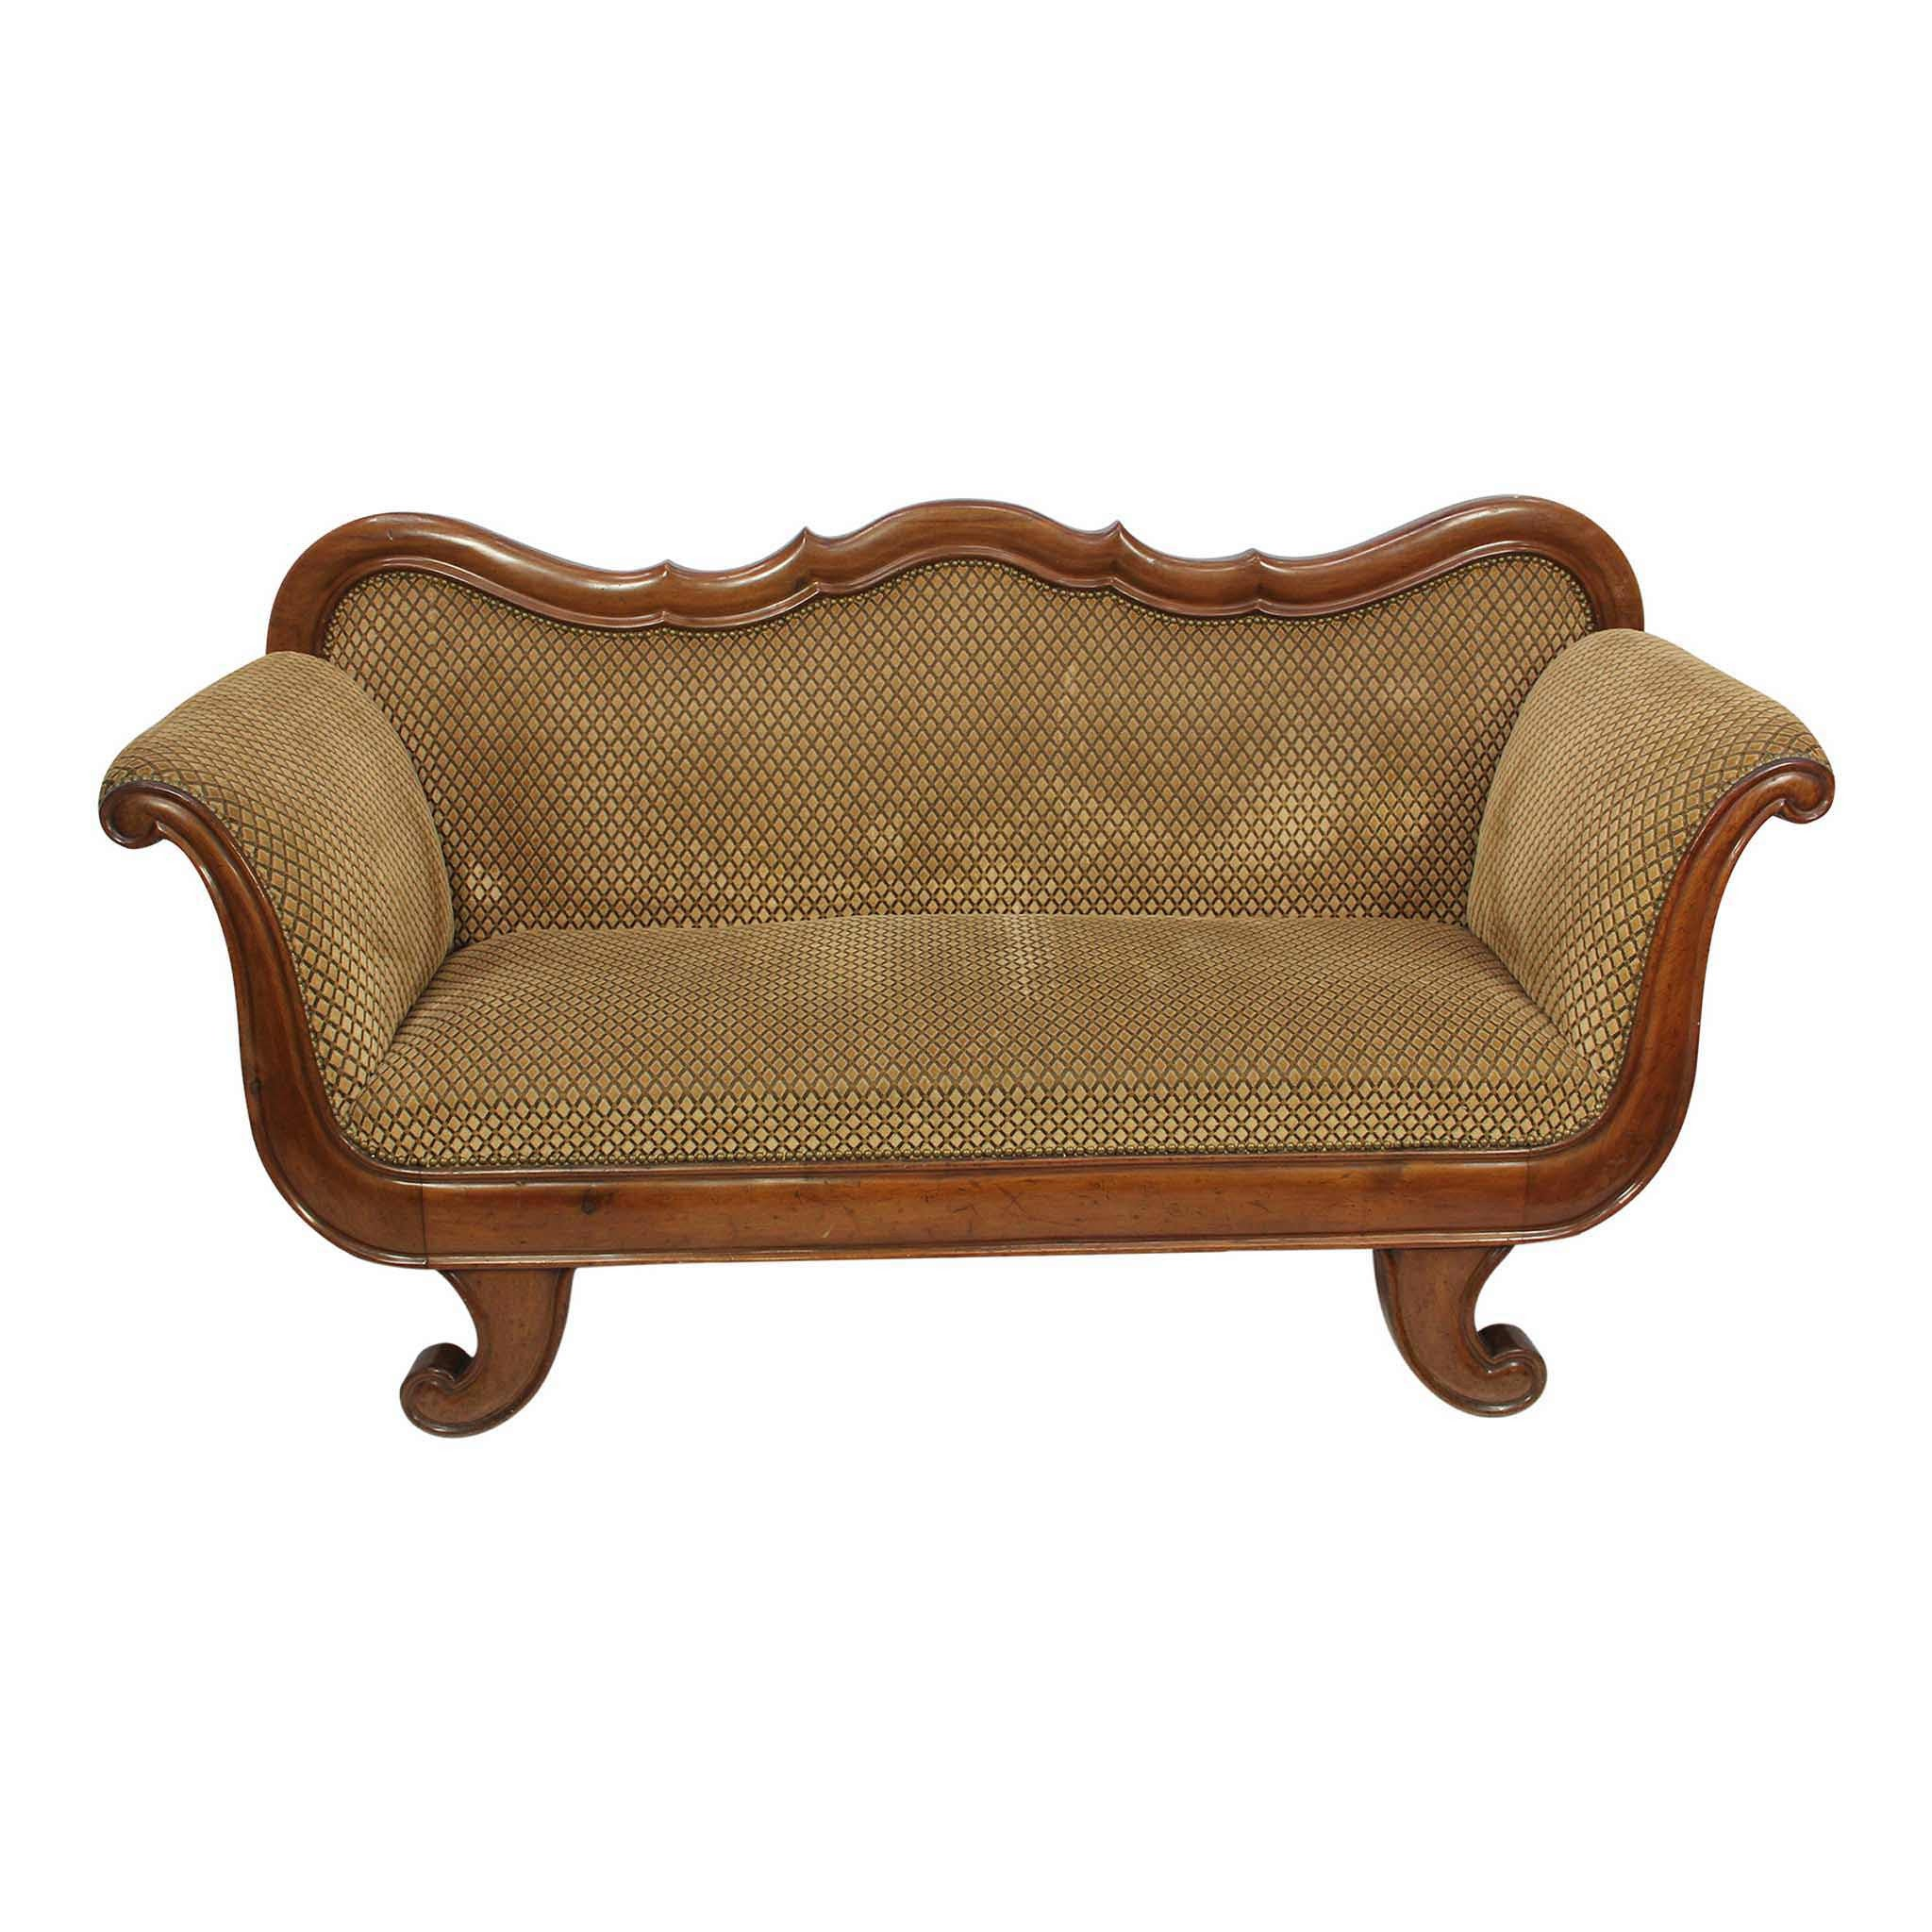 Walnut Uphostered Loveseat